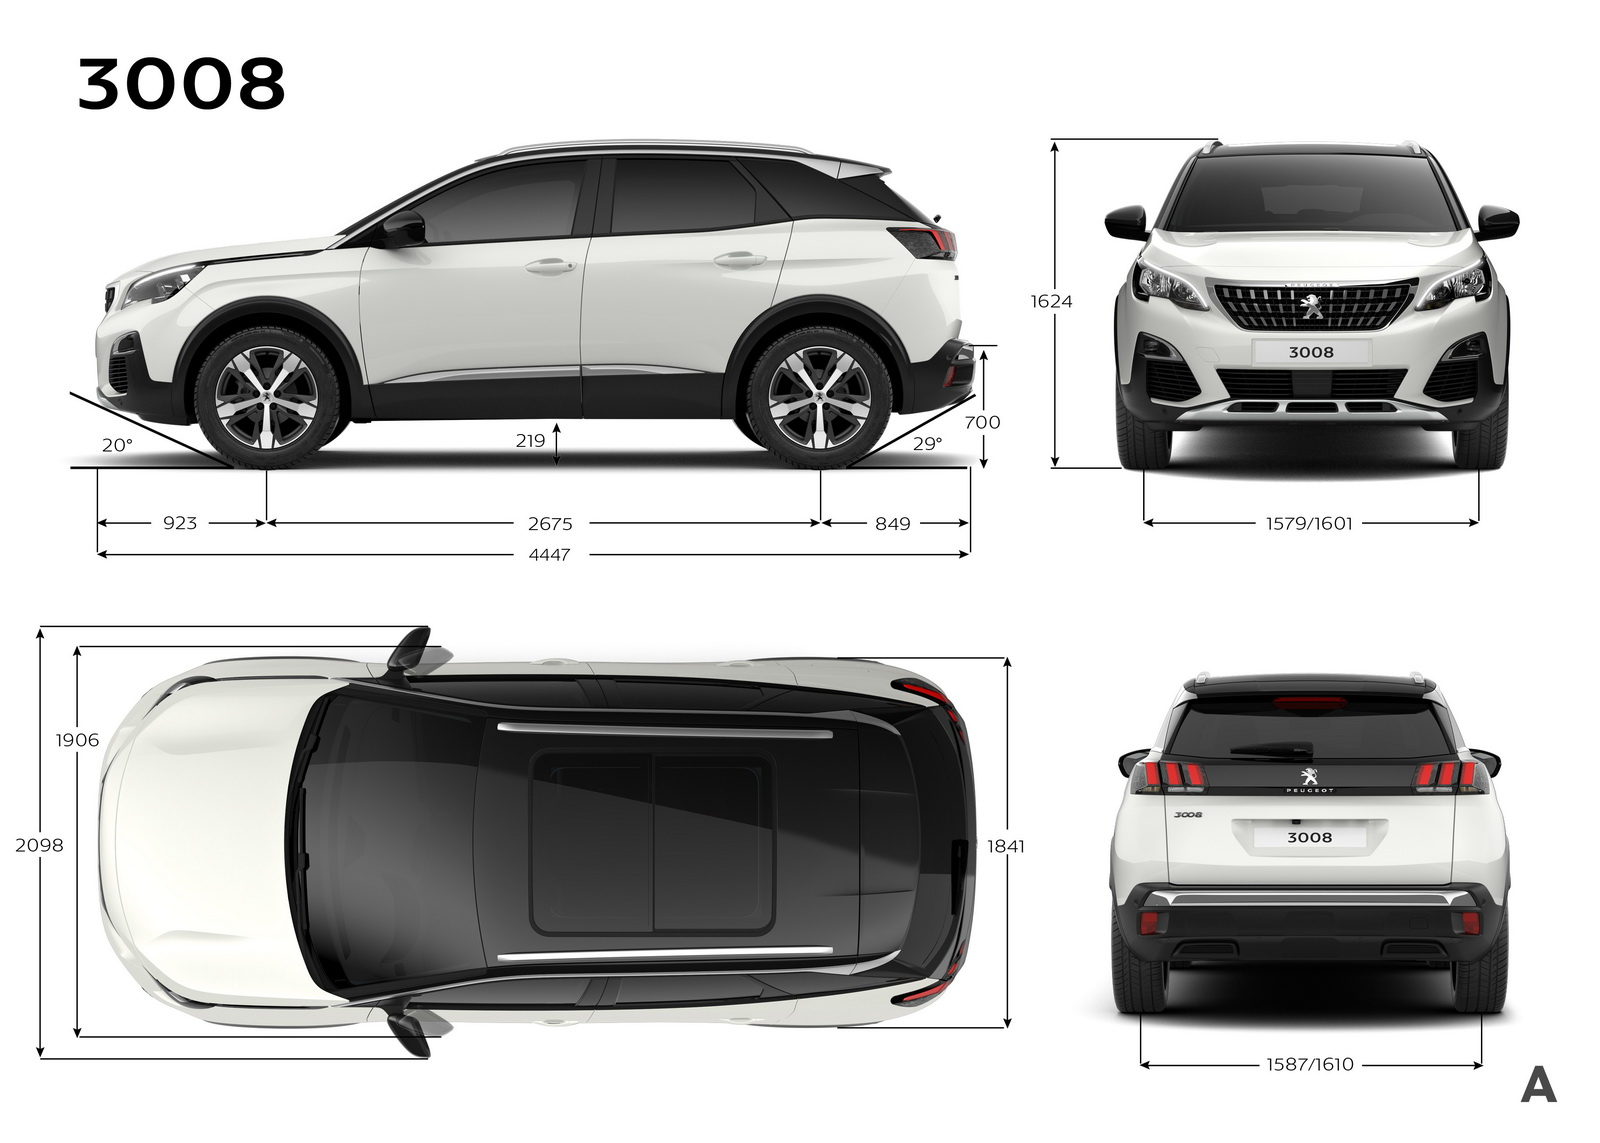 peugeot reveals qashqai rivalling 3008 suv 39 pics carscoops. Black Bedroom Furniture Sets. Home Design Ideas